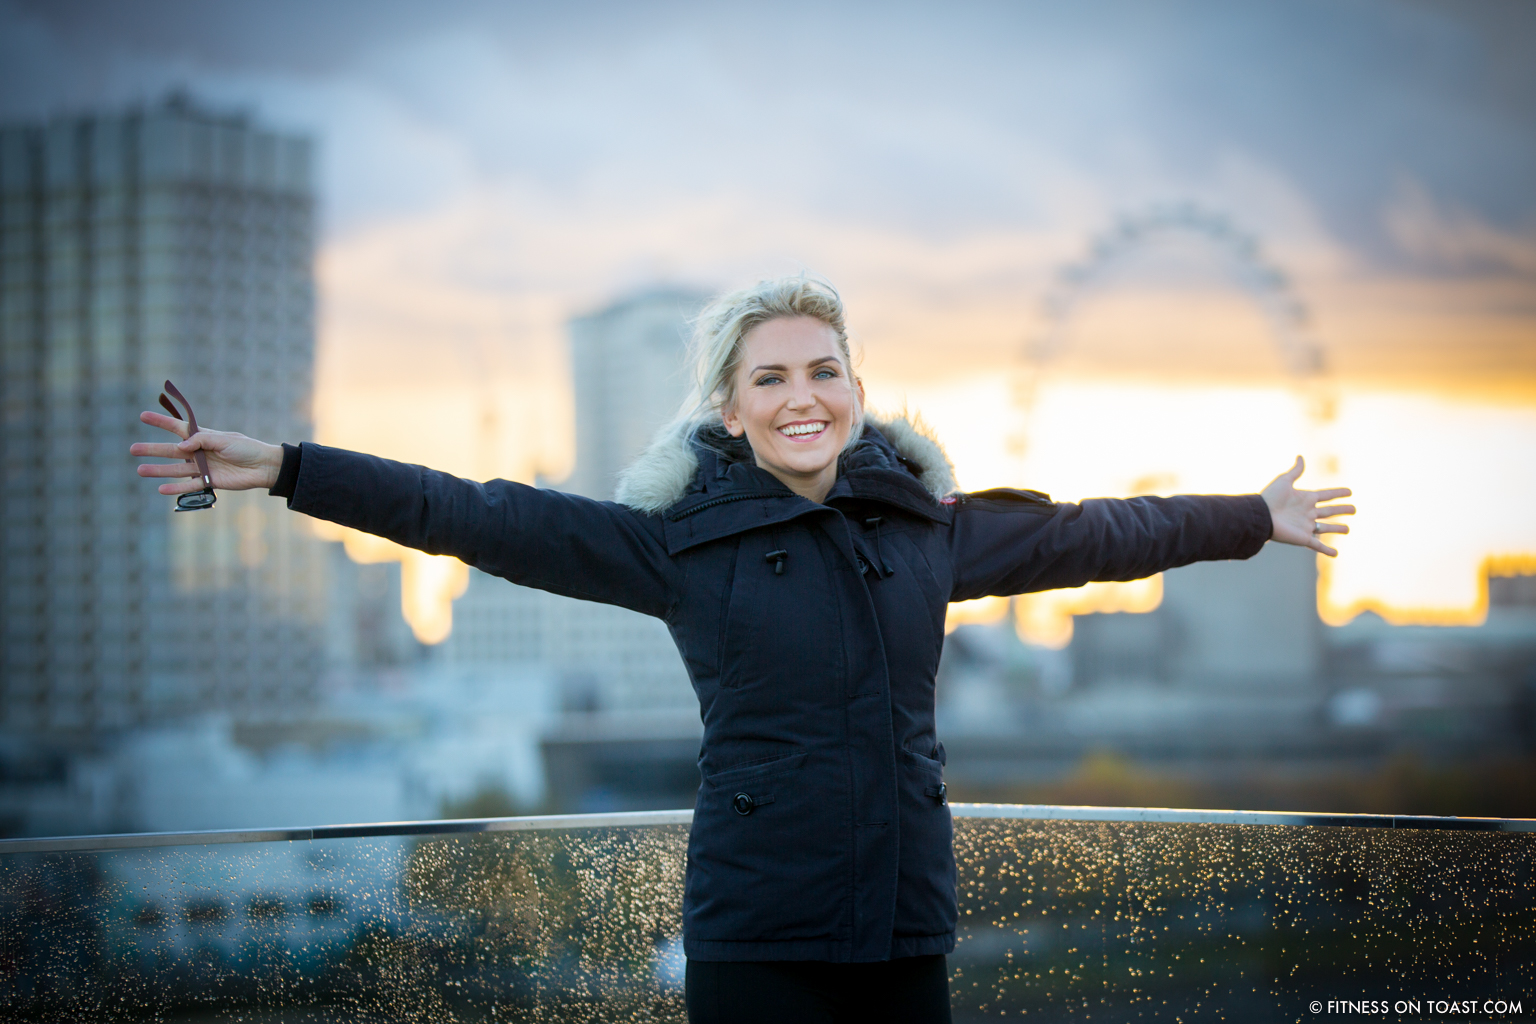 fitness-on-toast-faya-blog-book-girl-fit-in-3-little-brown-behind-the-scenes-bts-london-capital-thames-skyline-view-panoramic-18